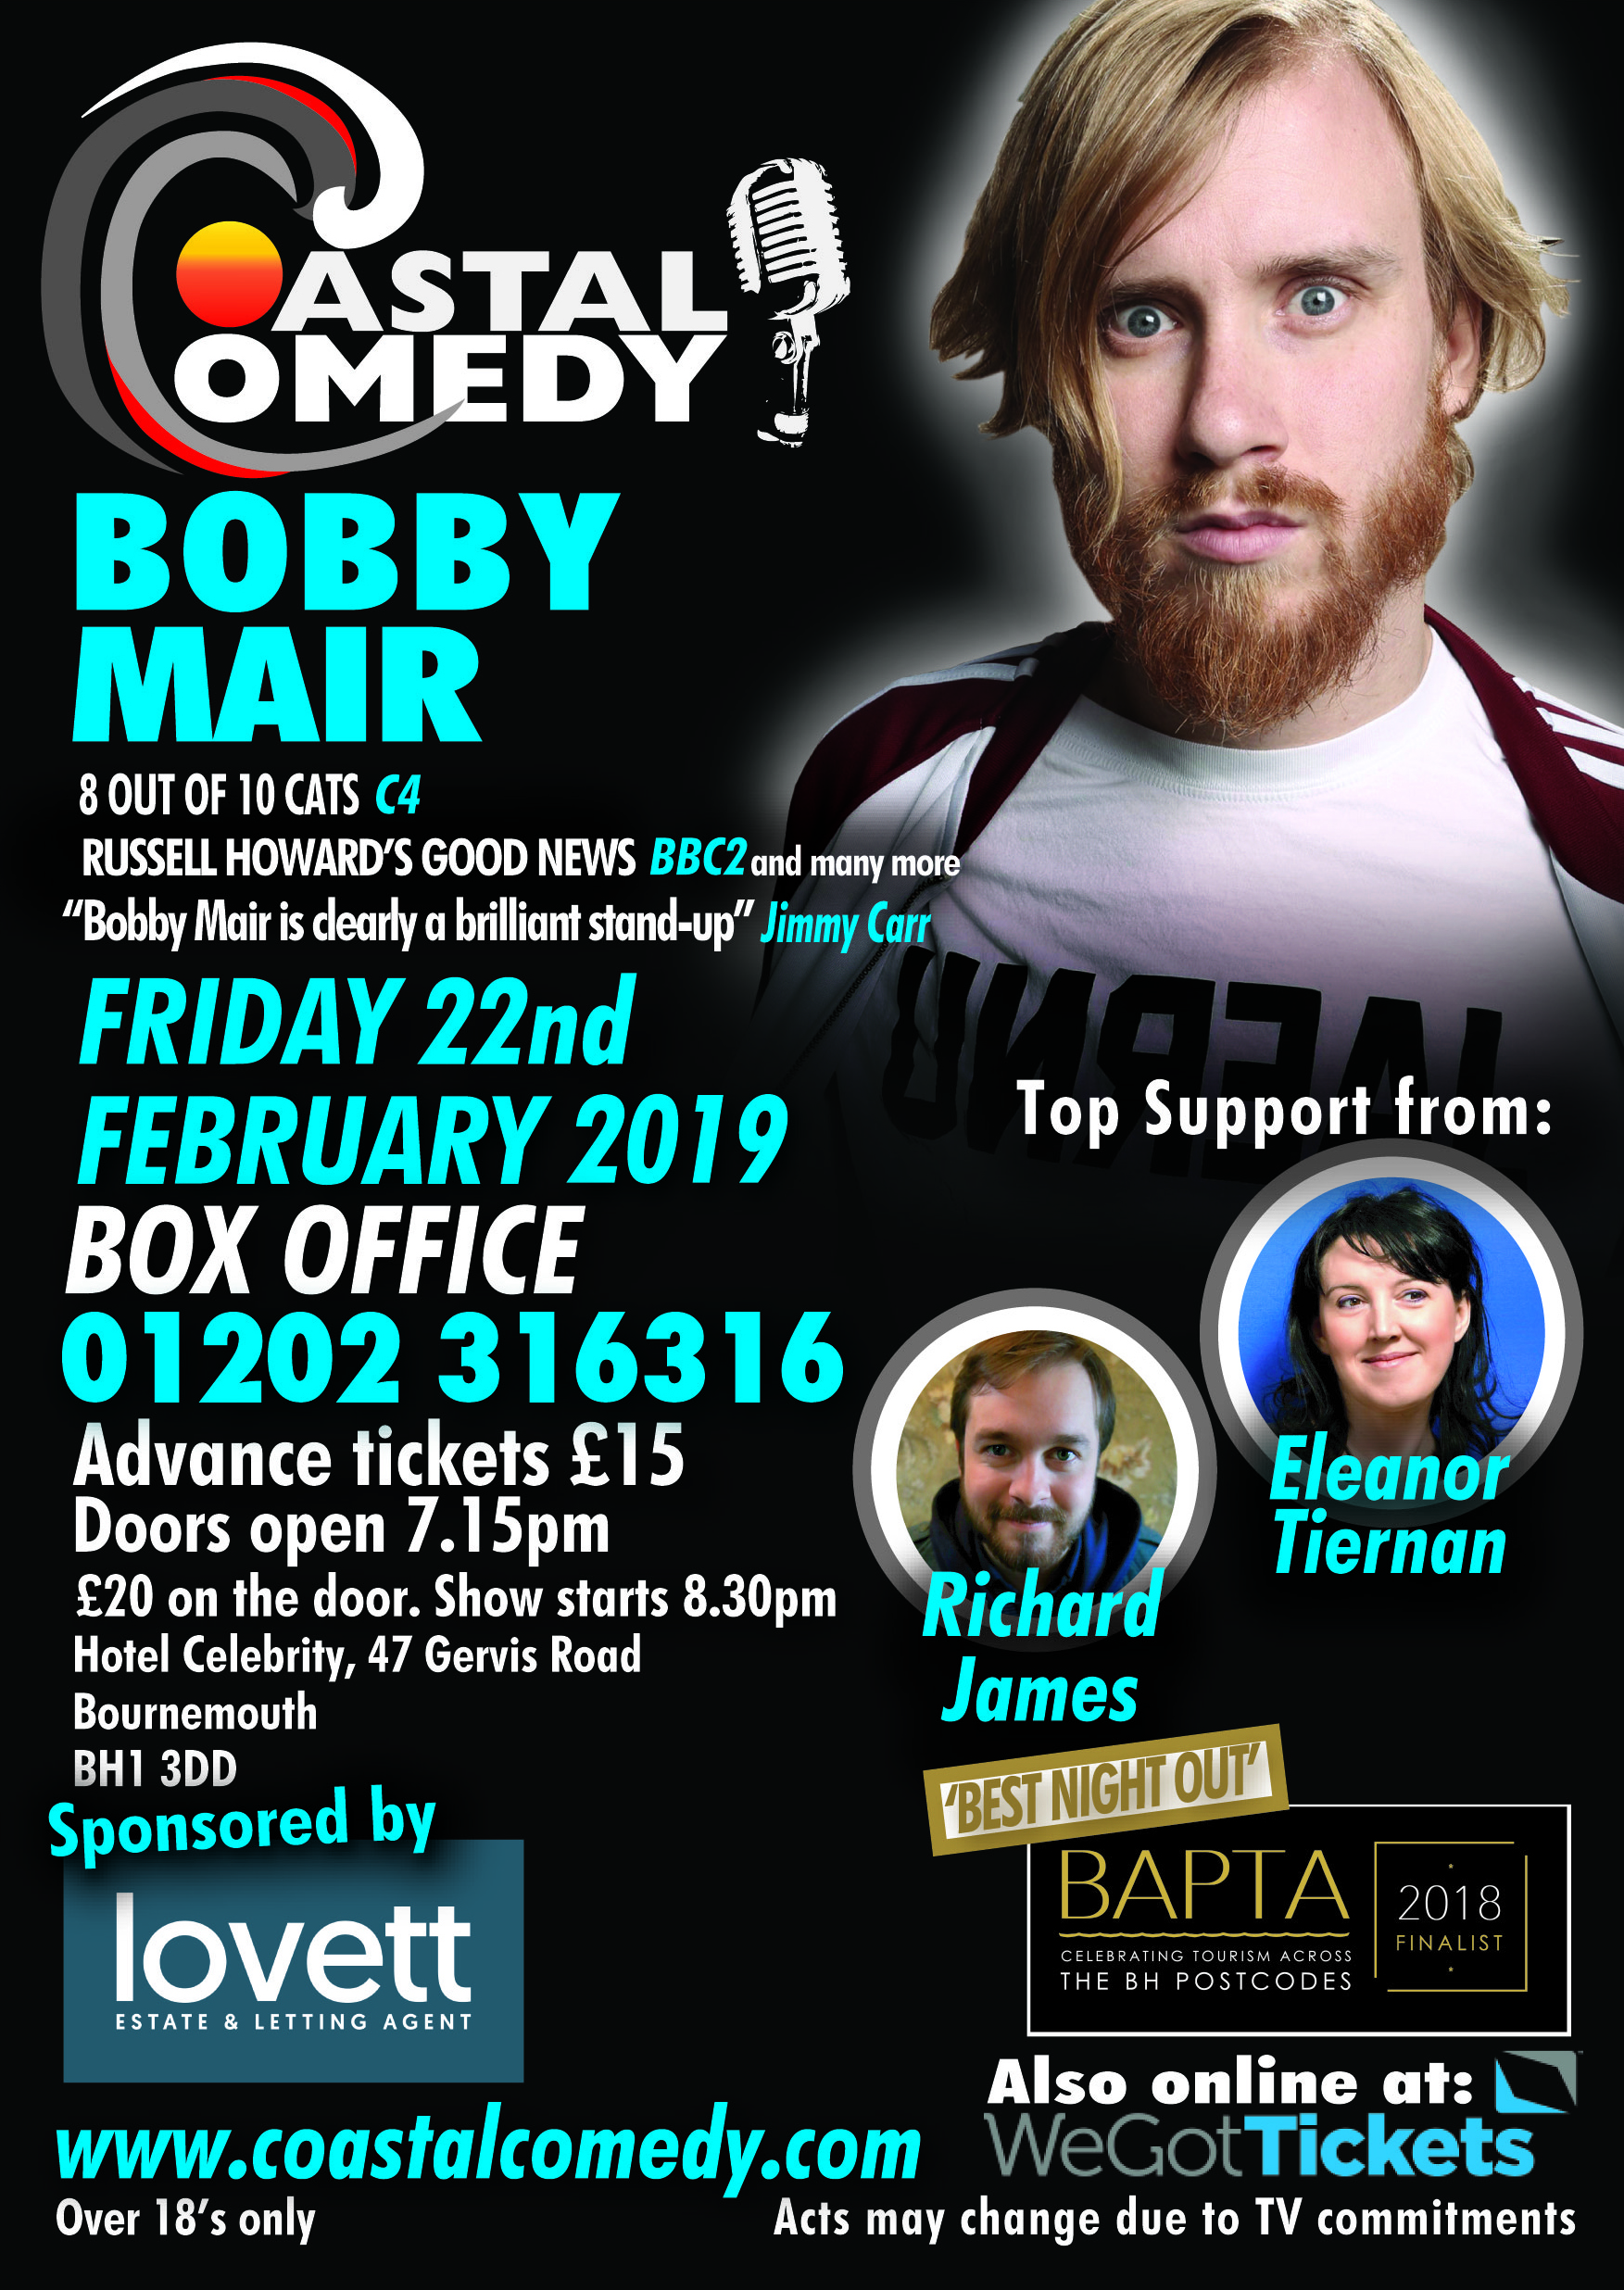 bobby mair, dorset, bournemouth, what's on, comedy, lol, standup, comedienne, Adrienne, BH stars,